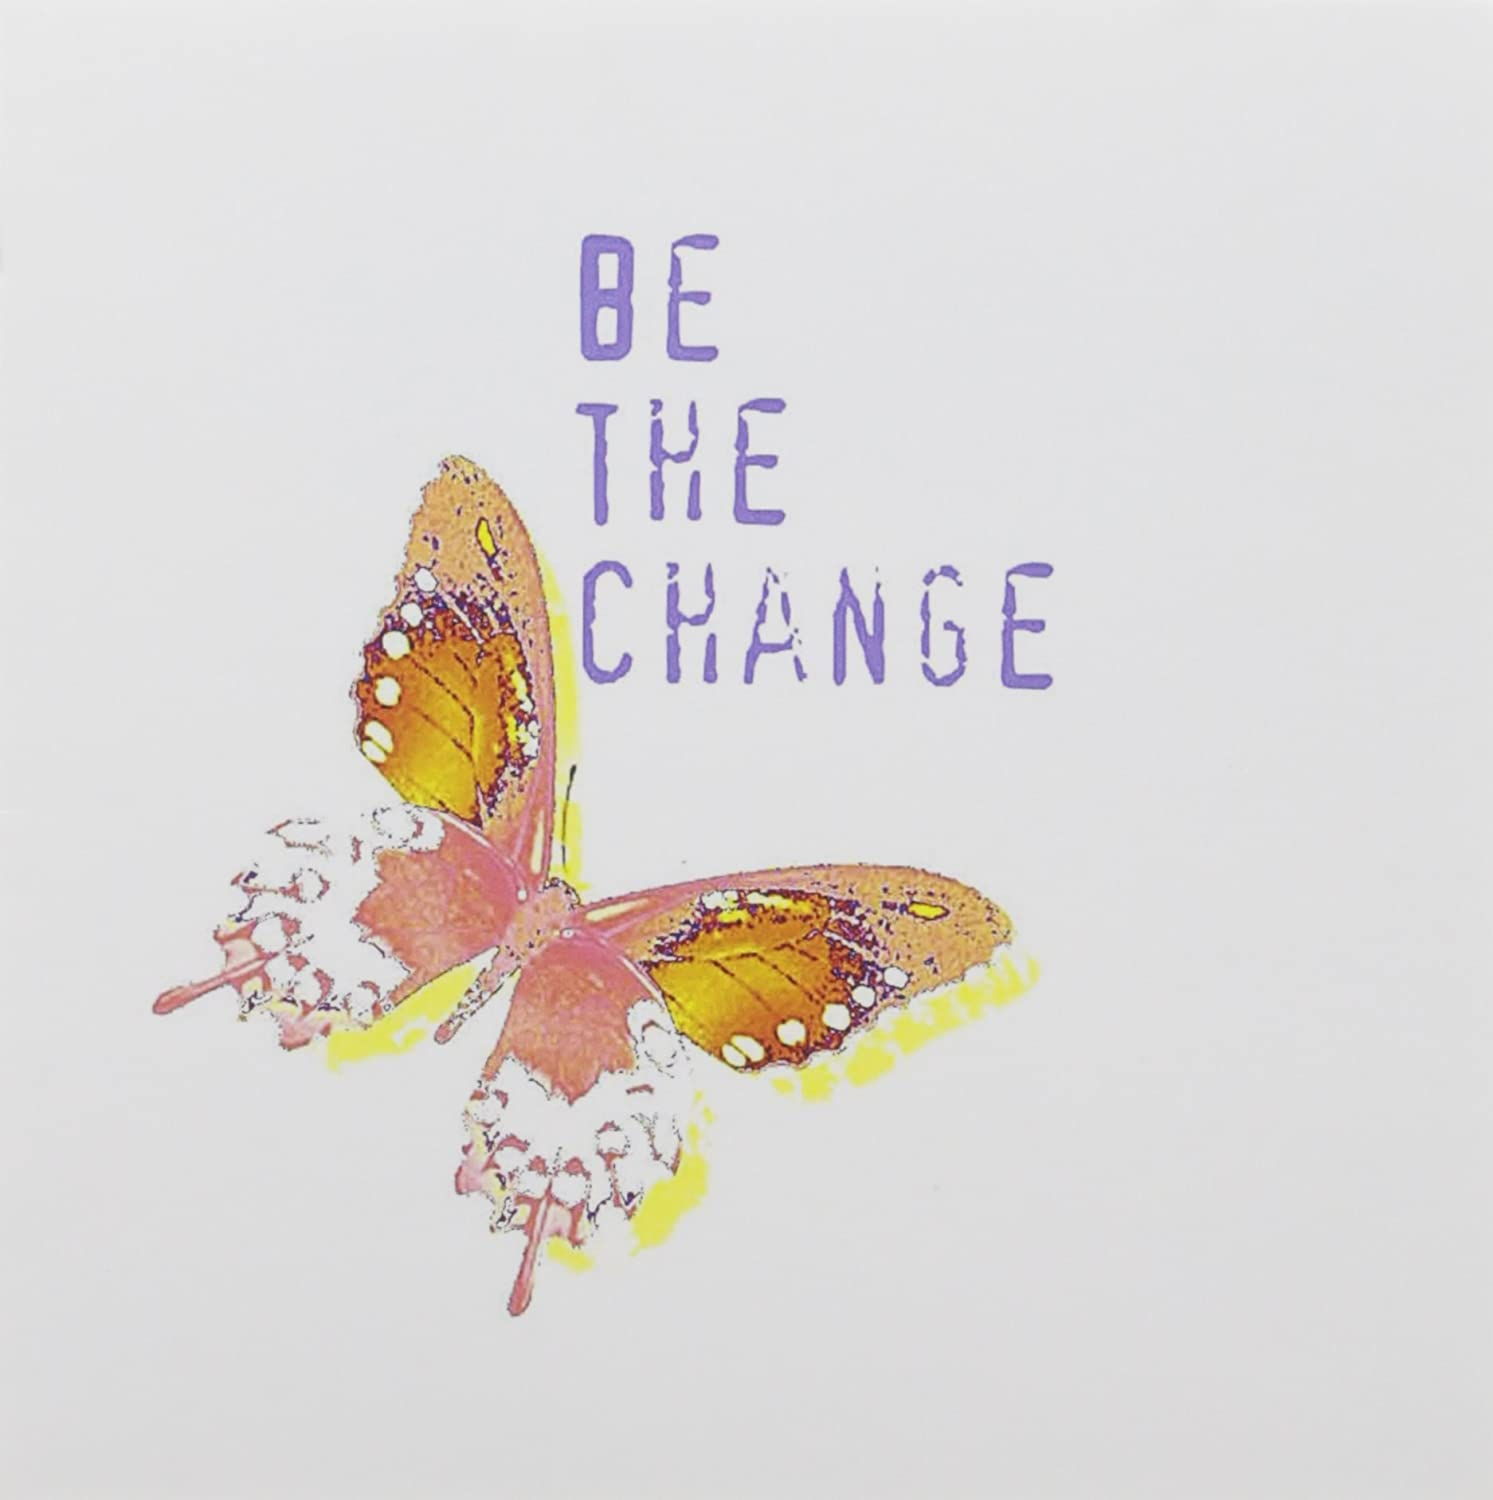 Amazon Com 3drose Be The Change Butterfly Inspirational Quotes Greeting Cards 6 X 6 Inches Set Of 12 Gc 31422 2 Blank Greeting Cards Office Products